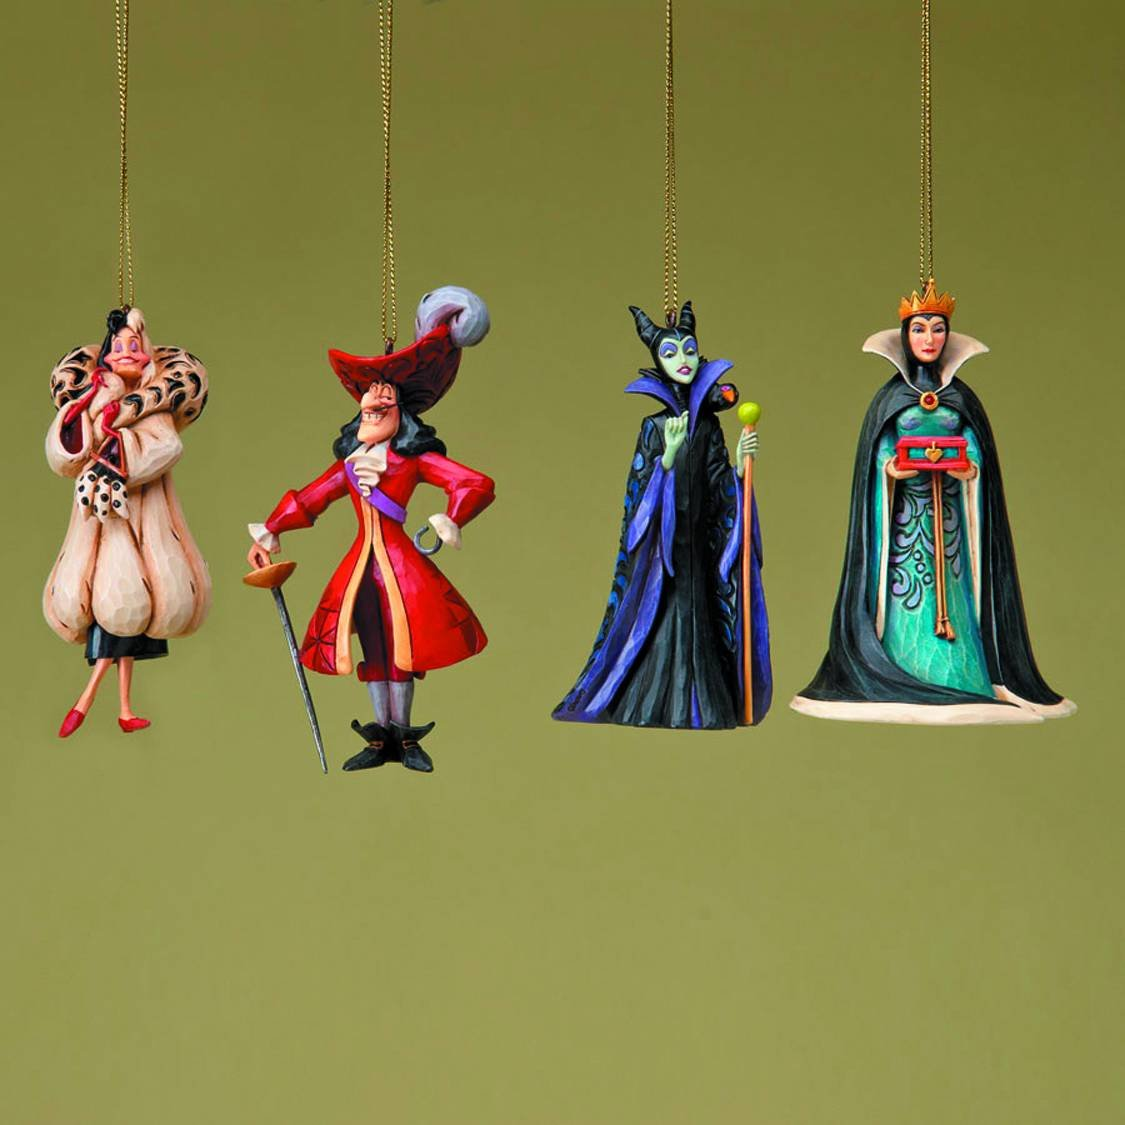 Disney figure Jim Showa Cruella Captain Hook 'Disney Villians Ornaments Set of 4' 4023566